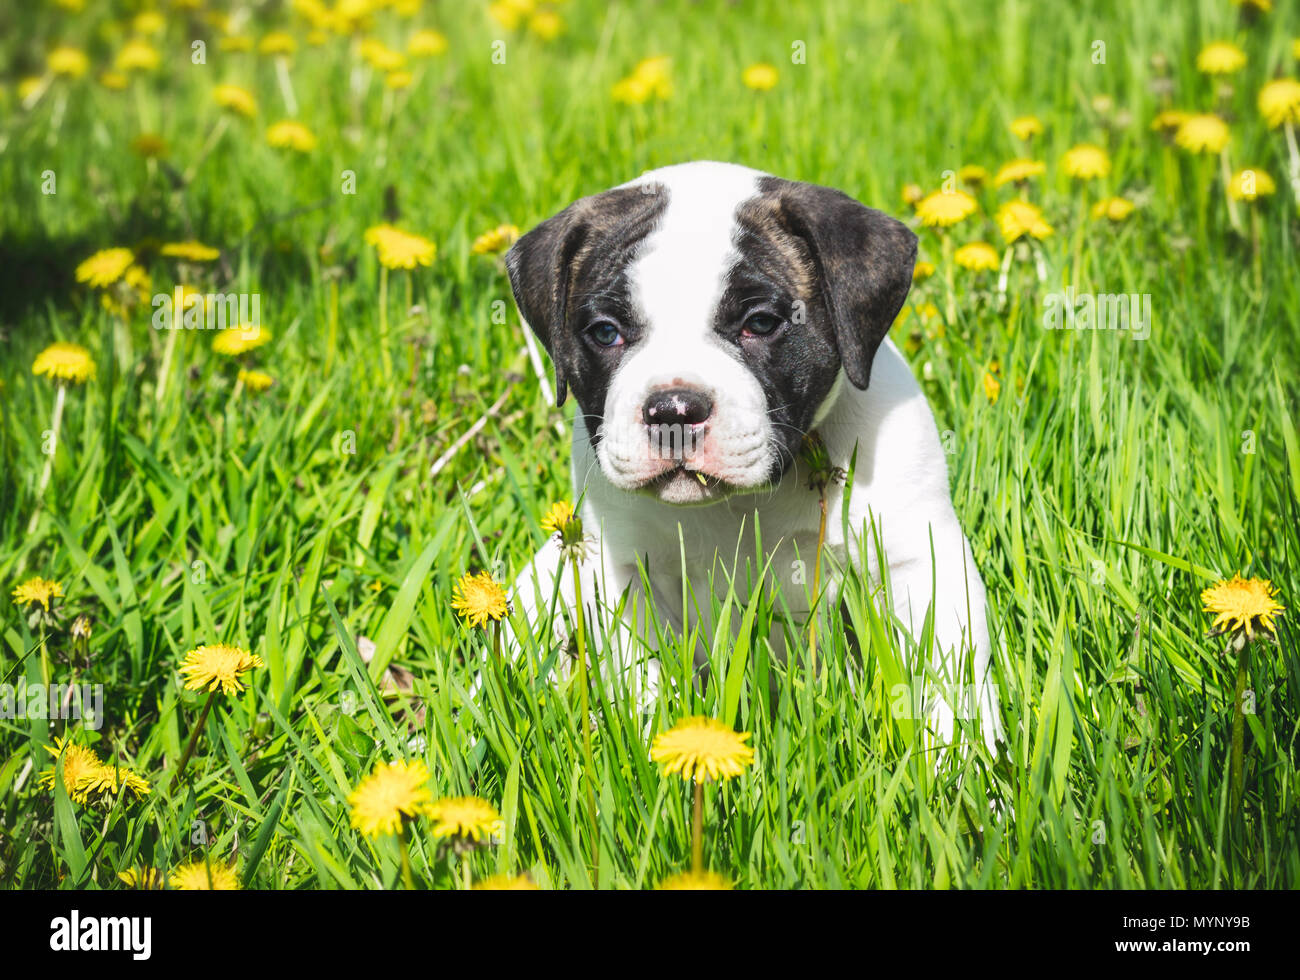 American Bulldog Puppy Stock Photos & American Bulldog Puppy